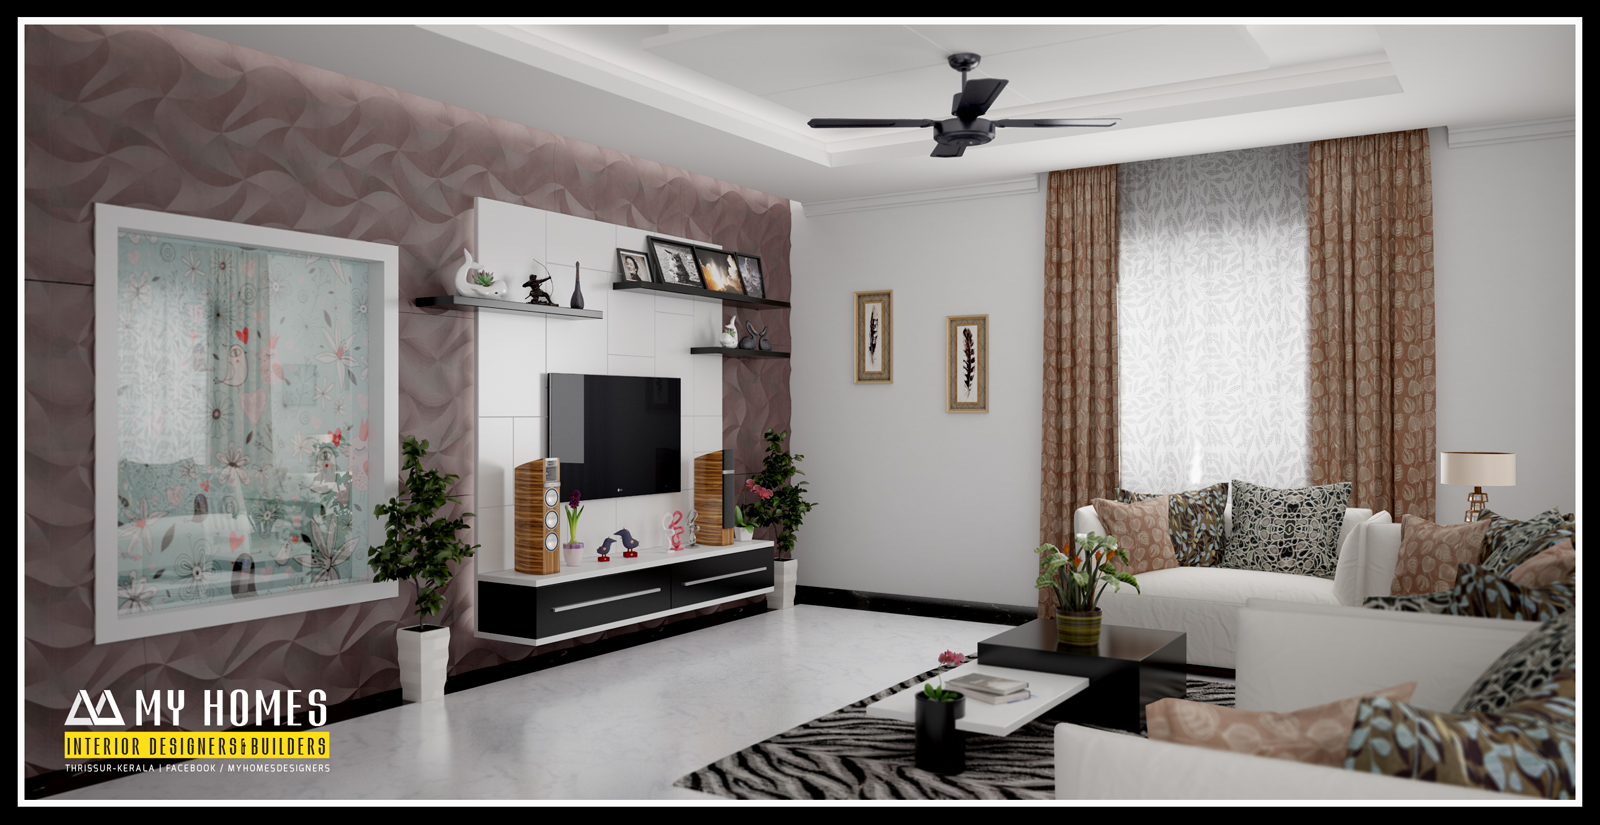 Kerala interior design ideas from designing company thrissur for Home design ideas interior